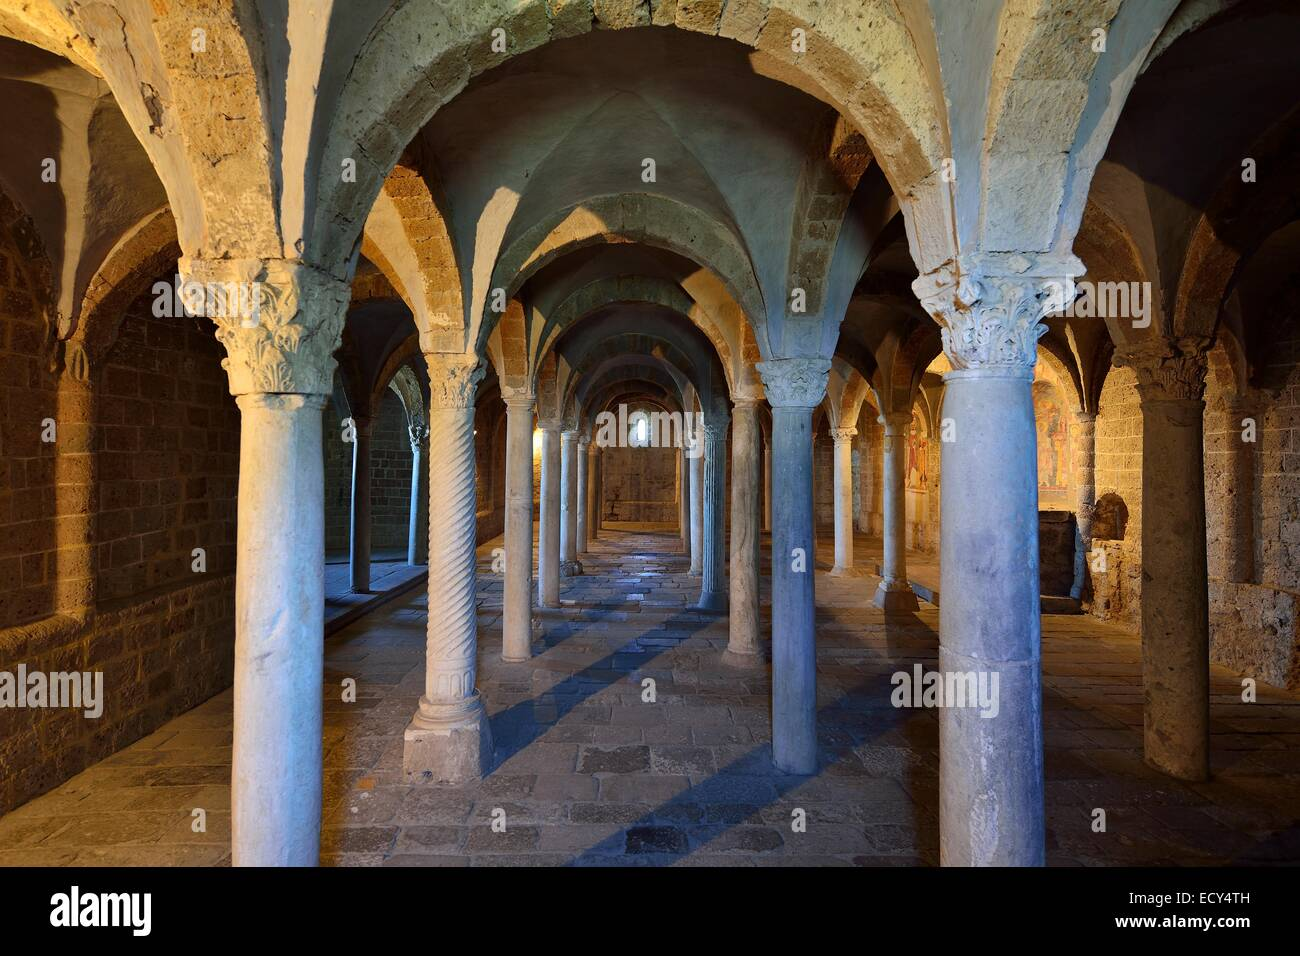 Hall crypt with ancient reused columns in the Basilica of San Pietro, Tuscania, Viterbo, Lazio, Ital - Stock Image